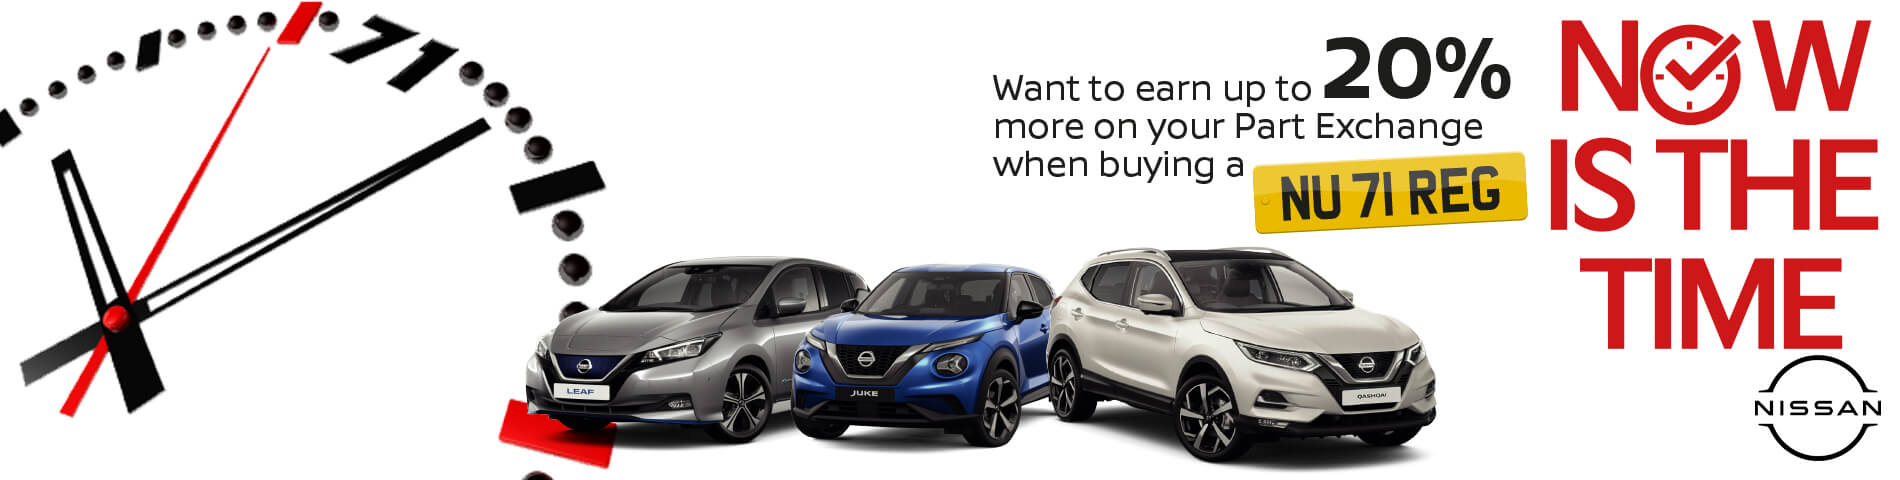 Howards Nissan Now is the Time Event